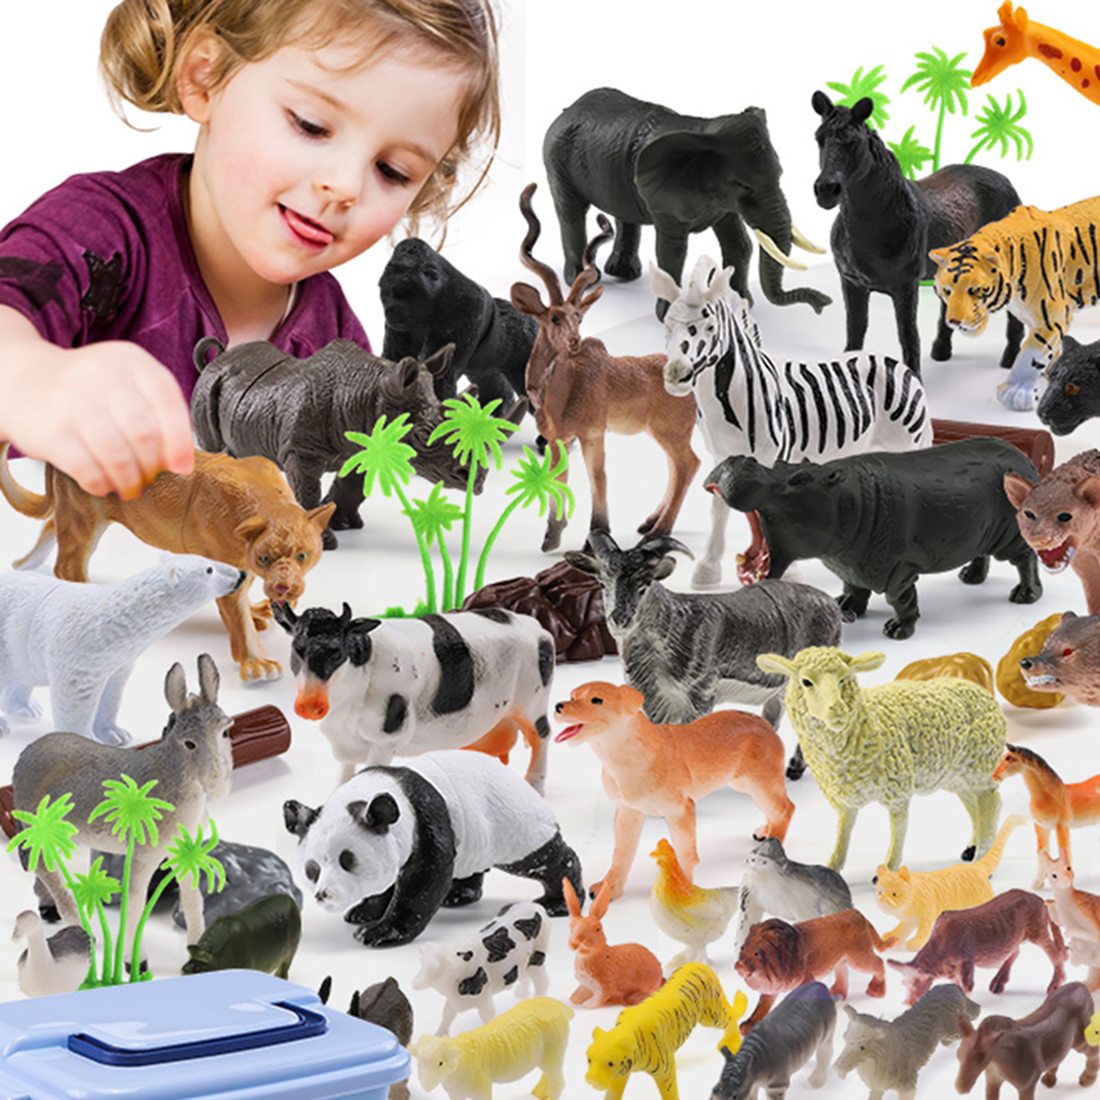 44pcs Genuine Wild Jungle Zoo Farm Animal Series Jaguar Collectible Model Kids Toy Children Early Learning Cognitive Toys Gifts44pcs Genuine Wild Jungle Zoo Farm Animal Series Jaguar Collectible Model Kids Toy Children Early Learning Cognitive Toys Gifts